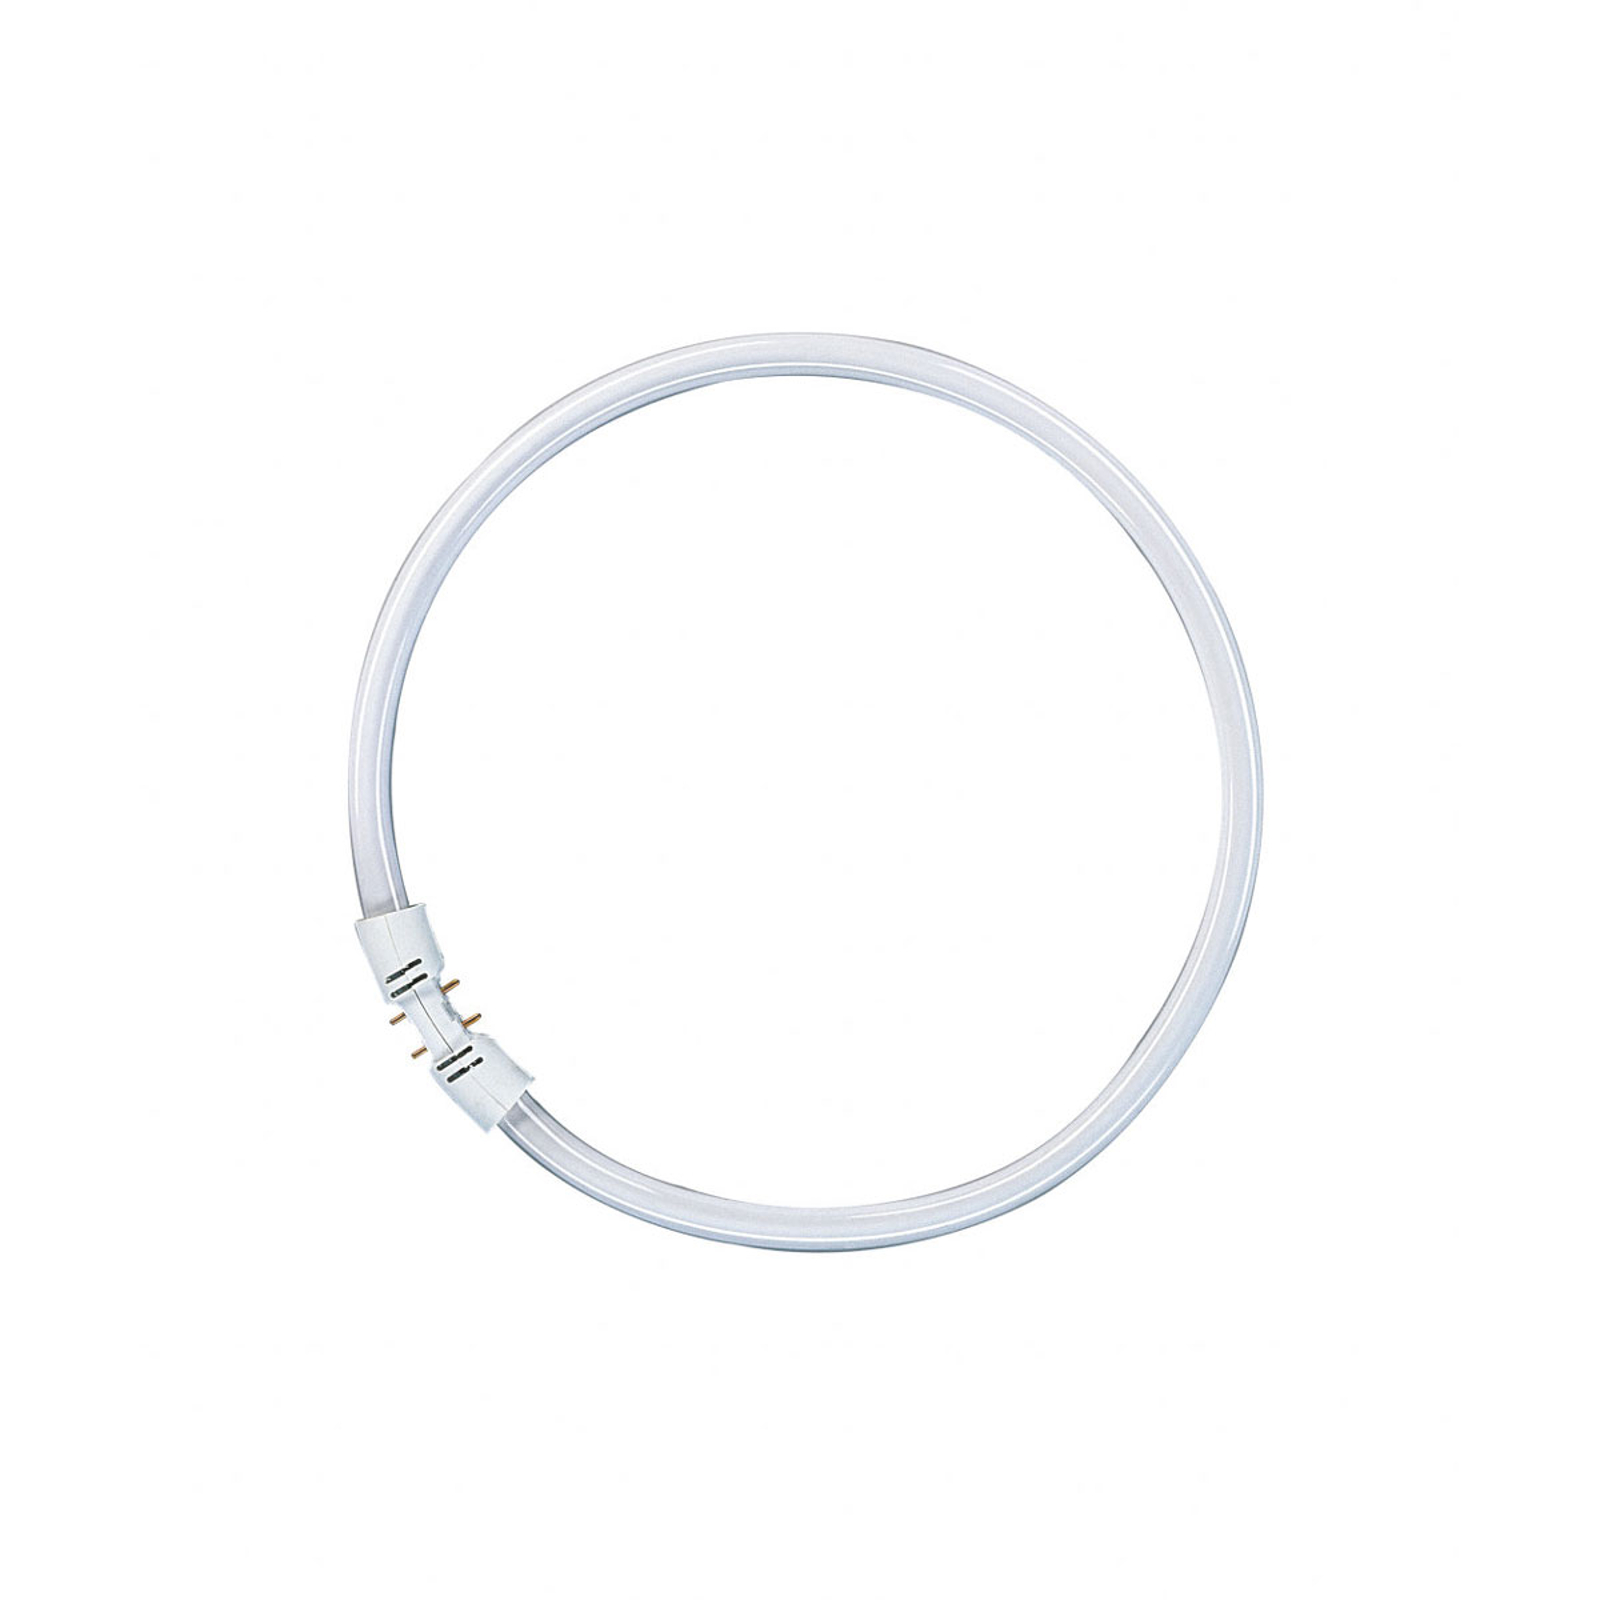 2Gx13 LUMILUX T5 Ring-Leuchtstofflampe 22W 840